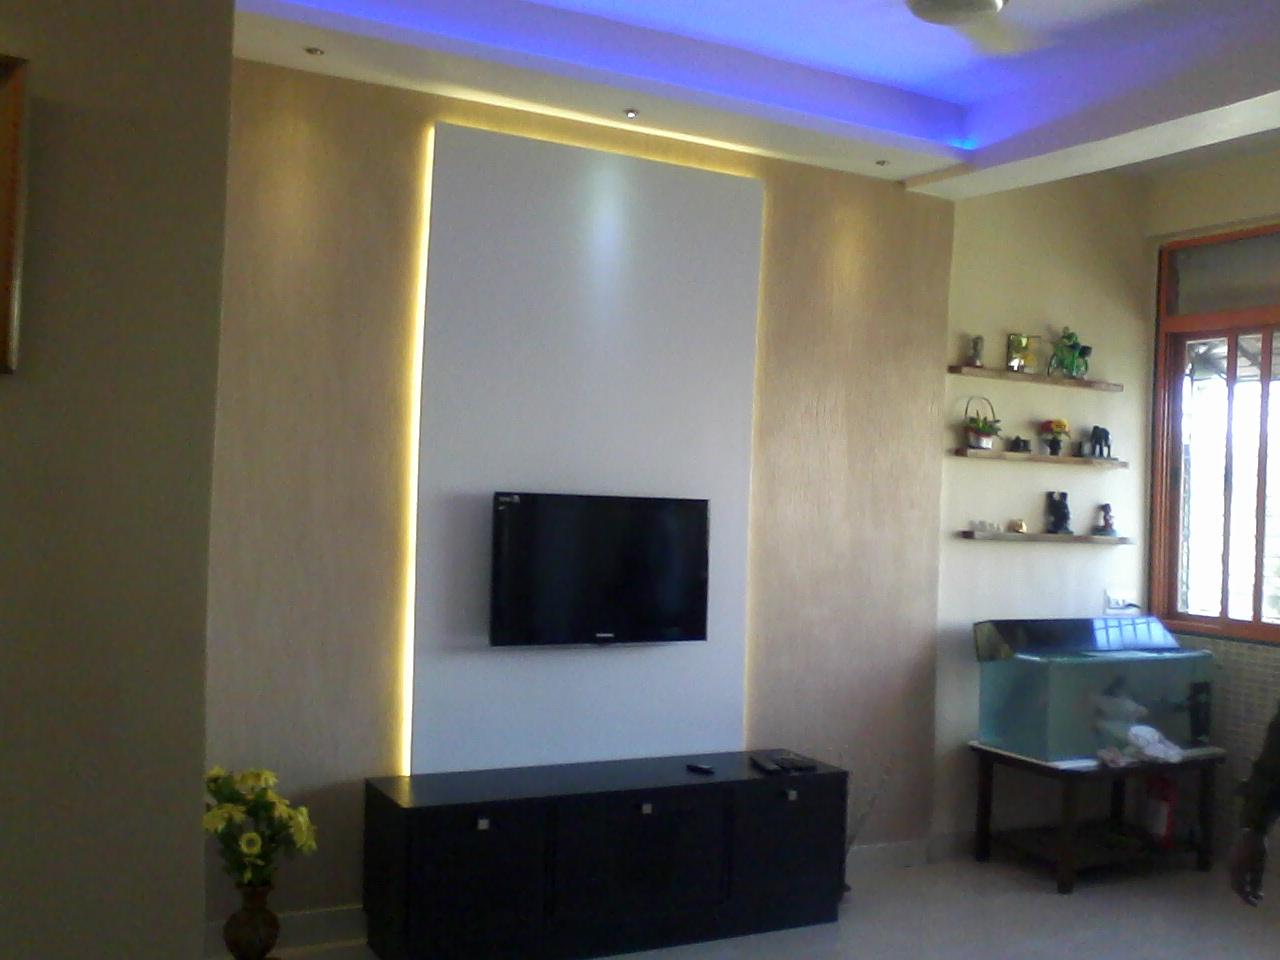 Backlit TV panel with white laminates backlit glow with yellow lights ...